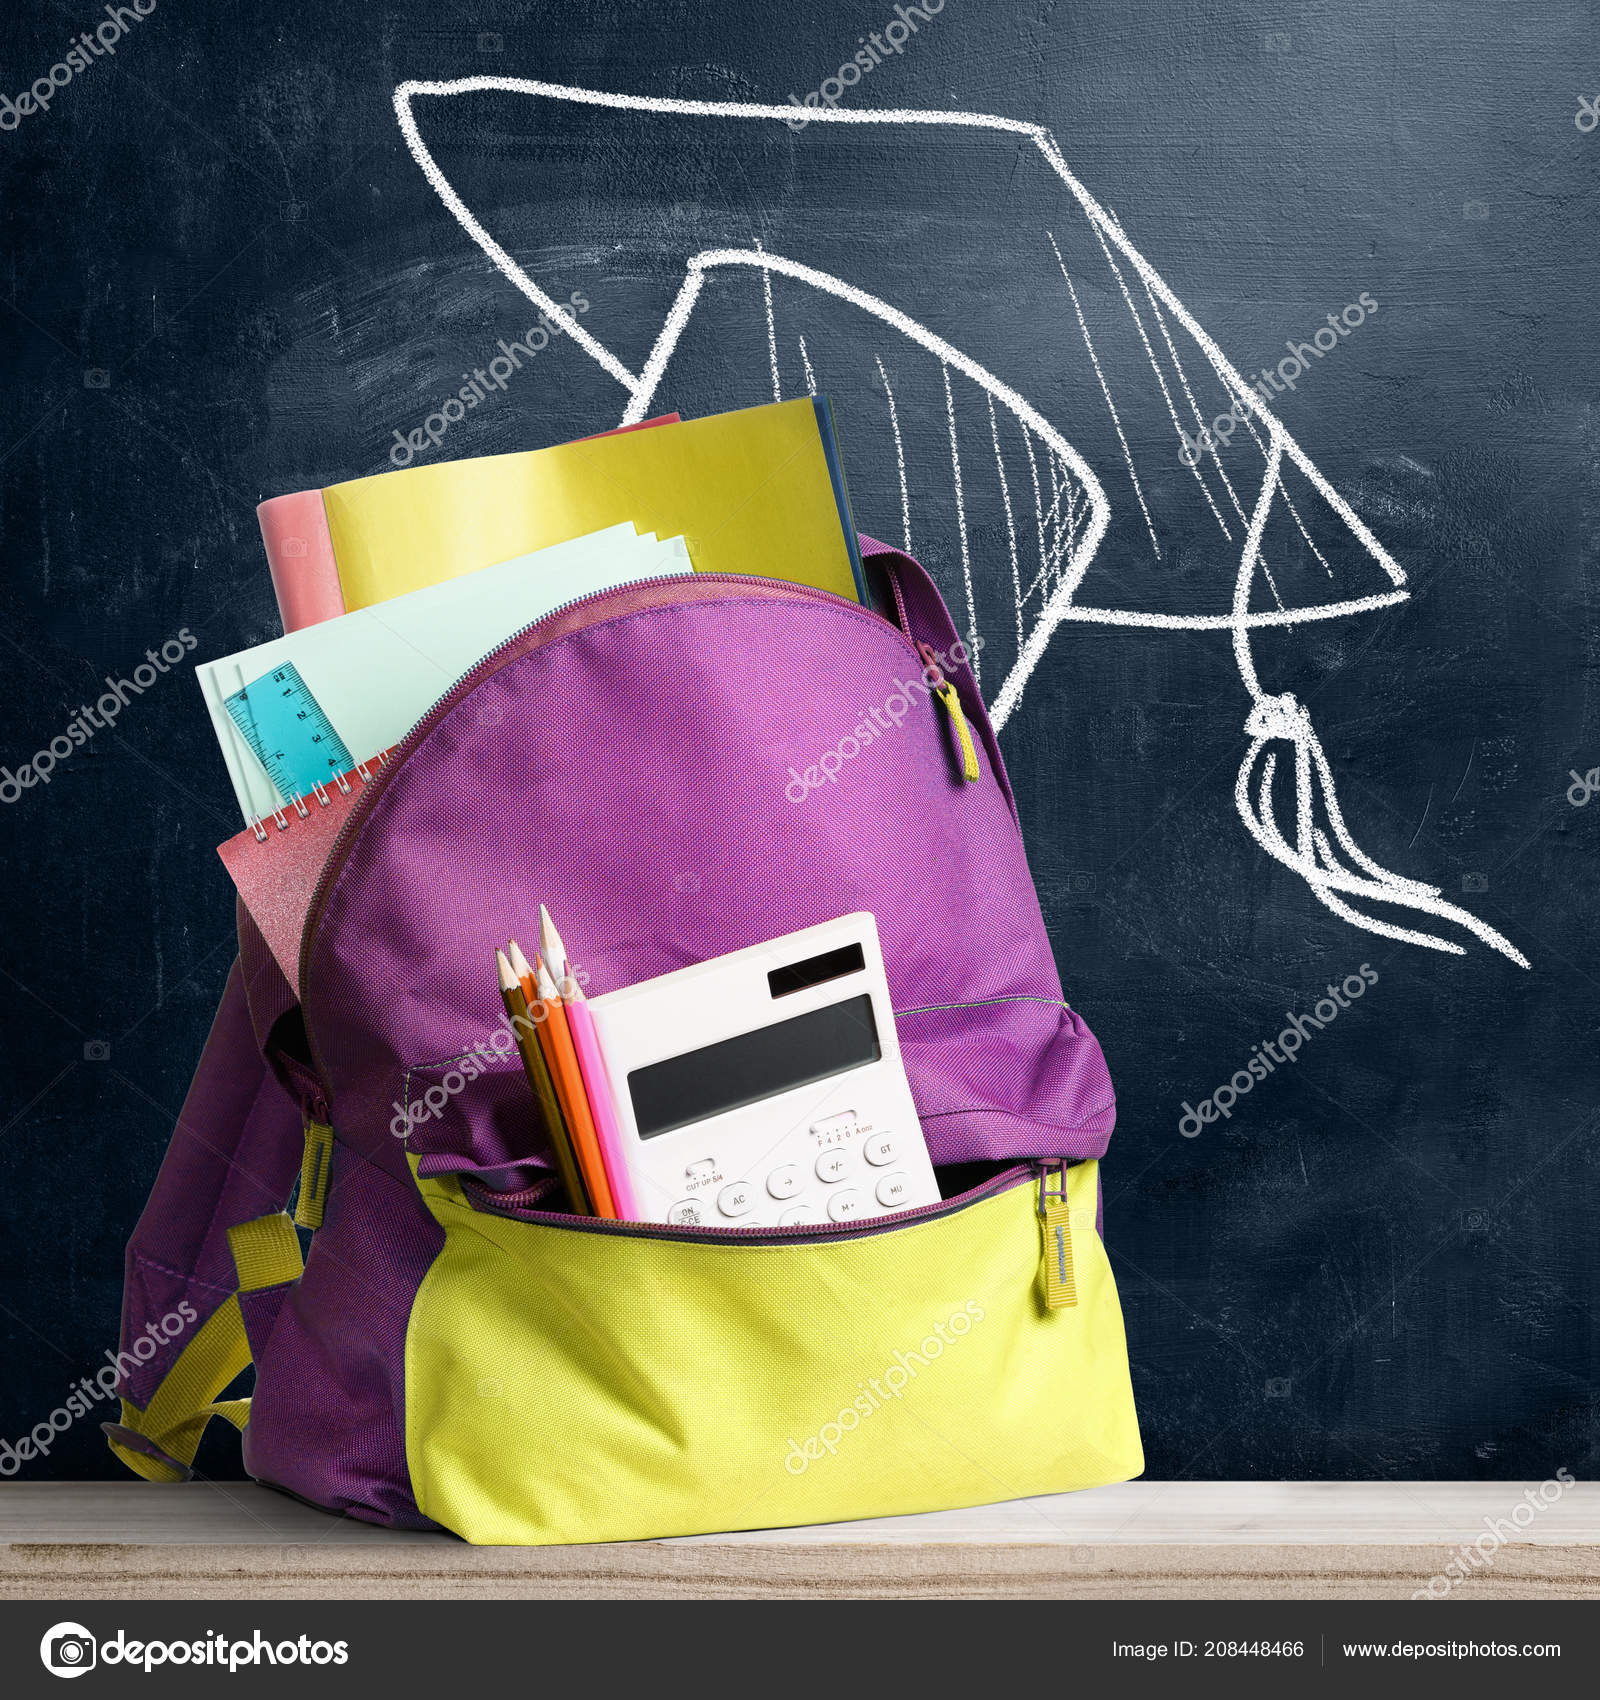 738ffe8574 Back to school shopping backpack. Accessories in student bag against  chalkboard — Photo by sergeypeterman